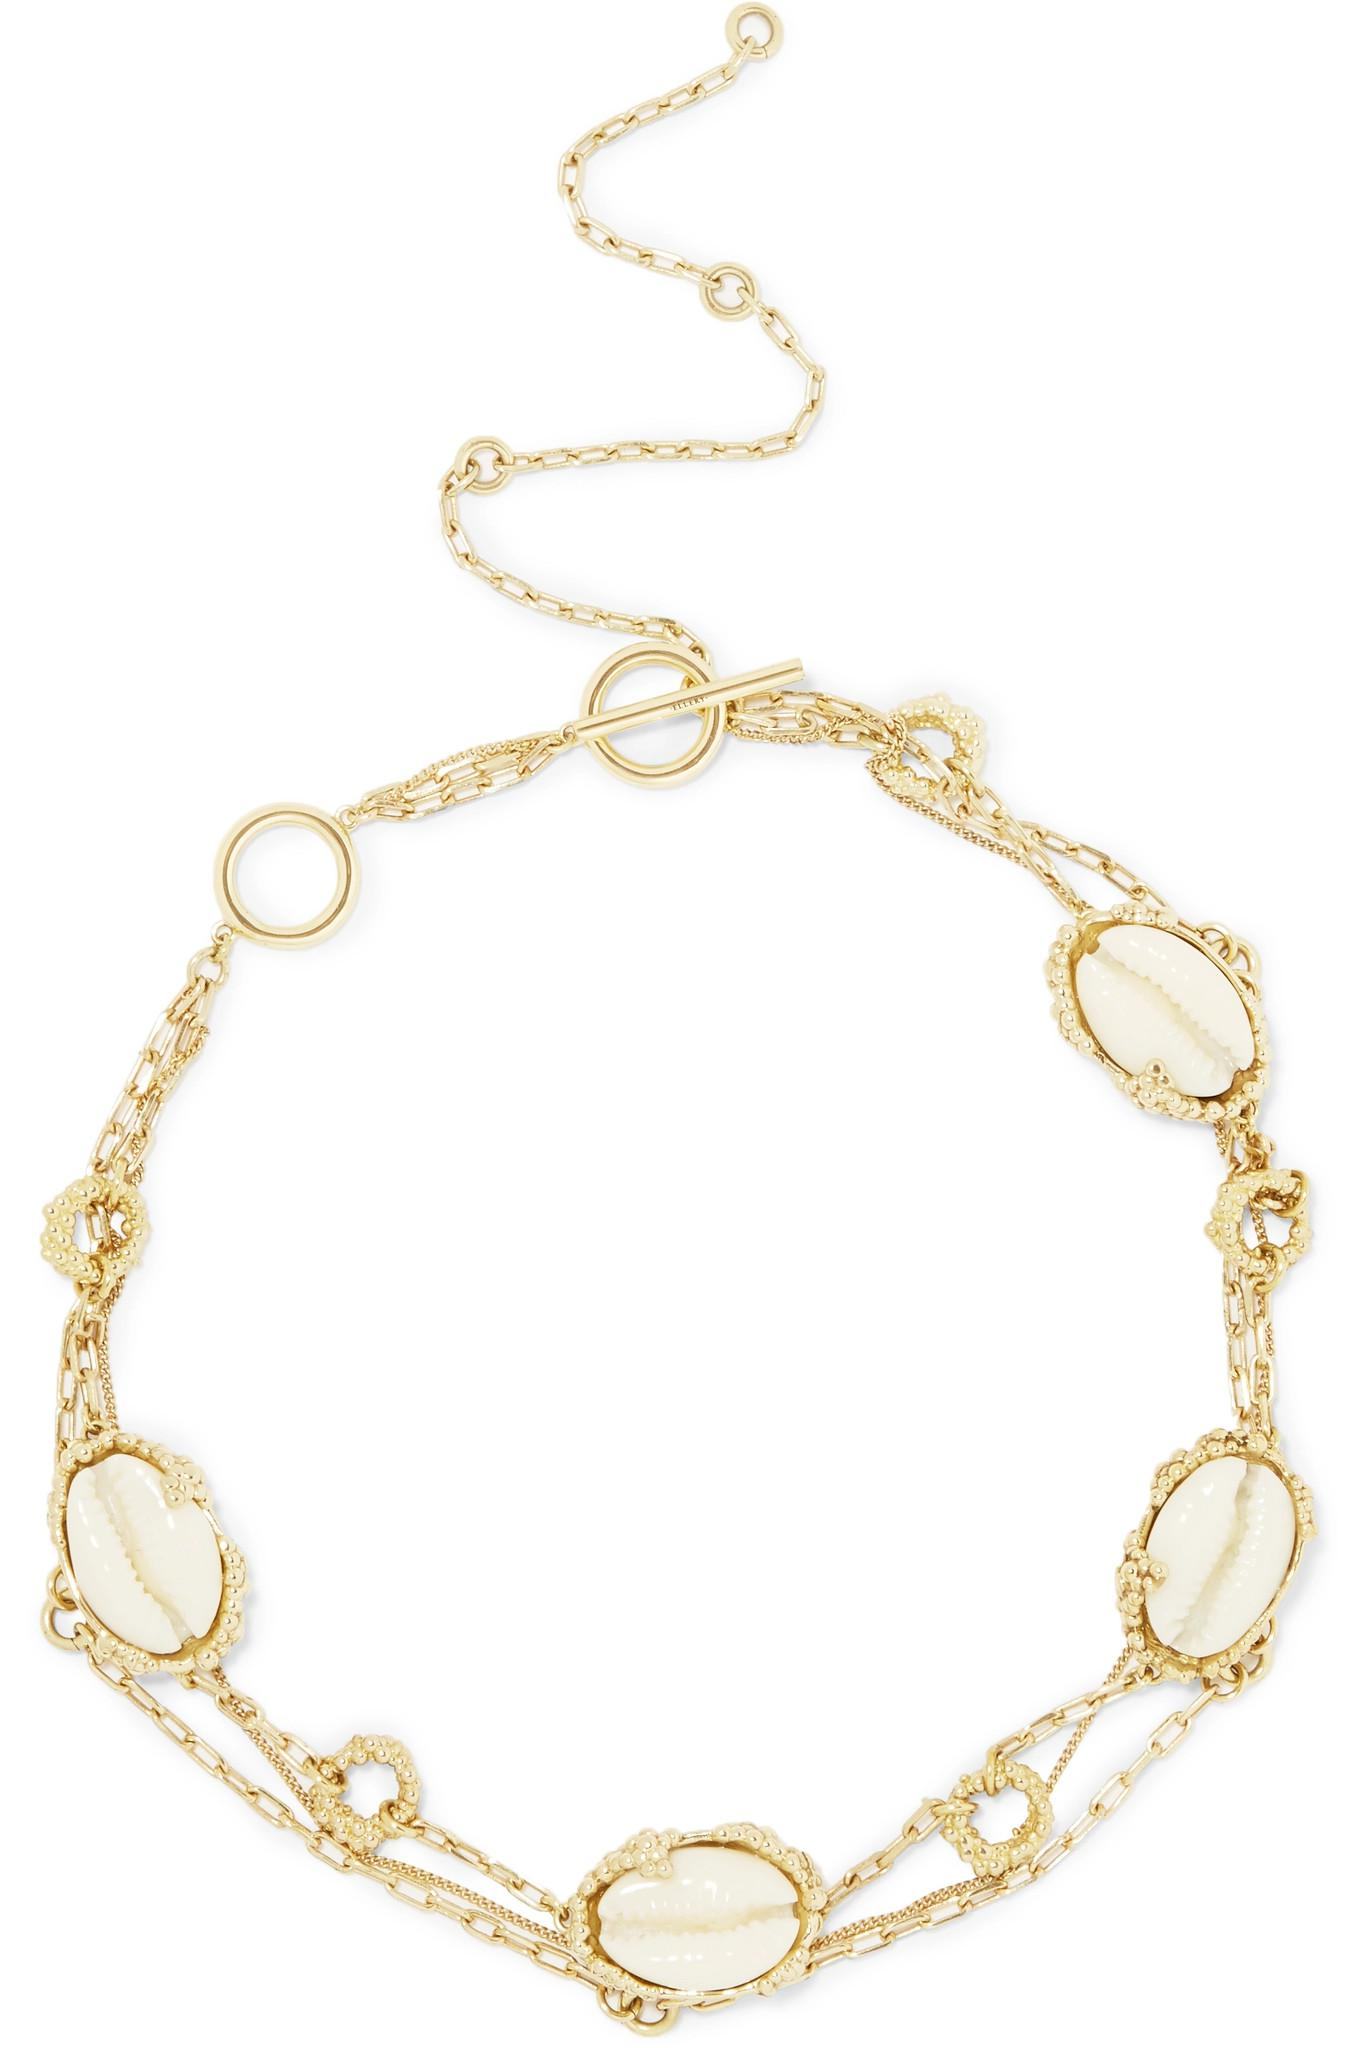 Igneous shell gold-plated choker Ellery nxw0Hz9P0